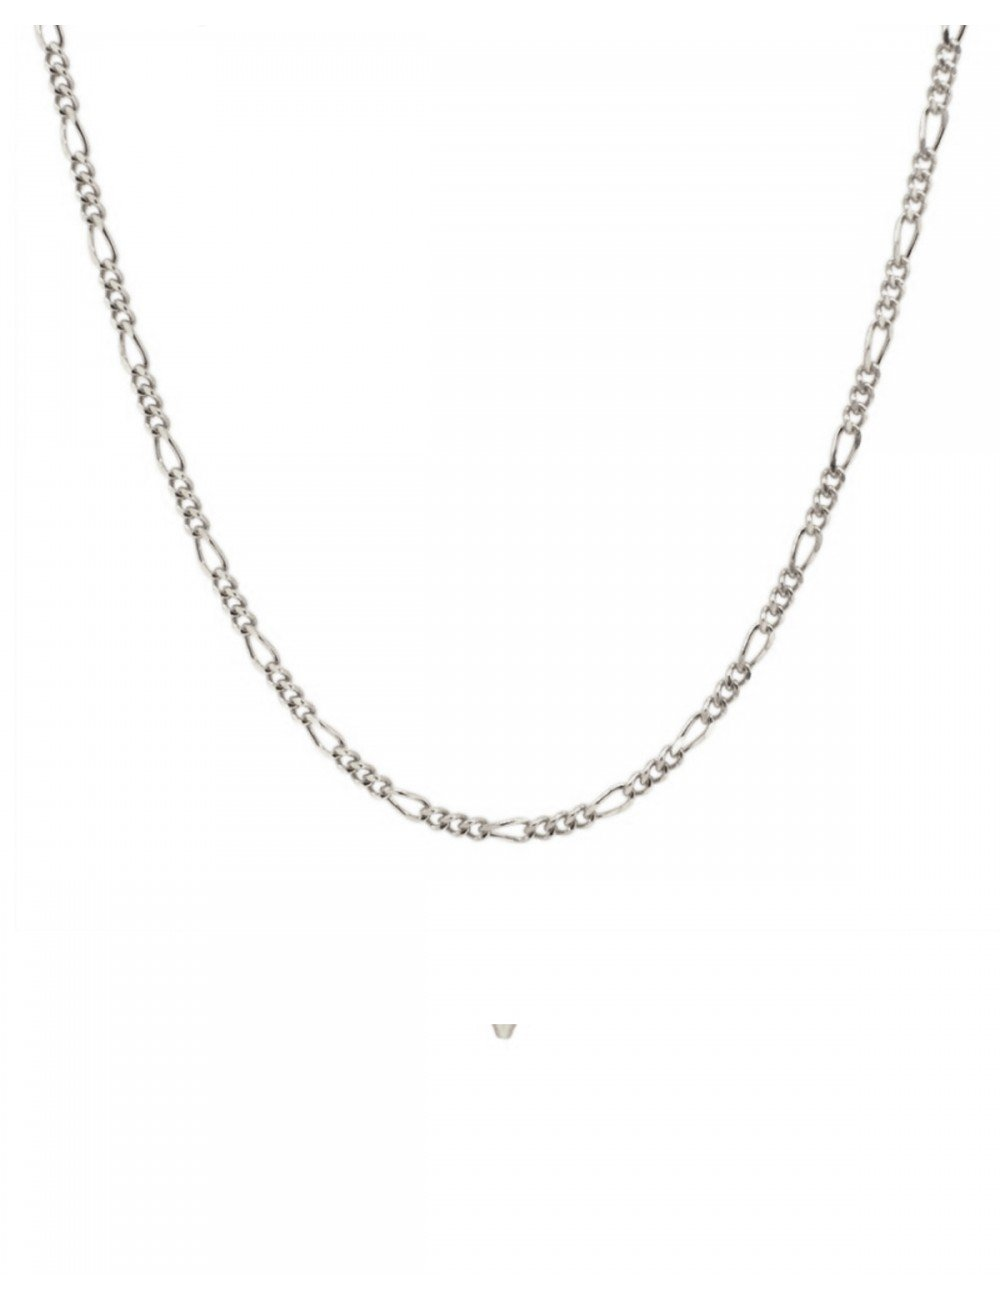 dca3d5fa1a Minimalist figaro chain choker necklace 925 sterling silver.